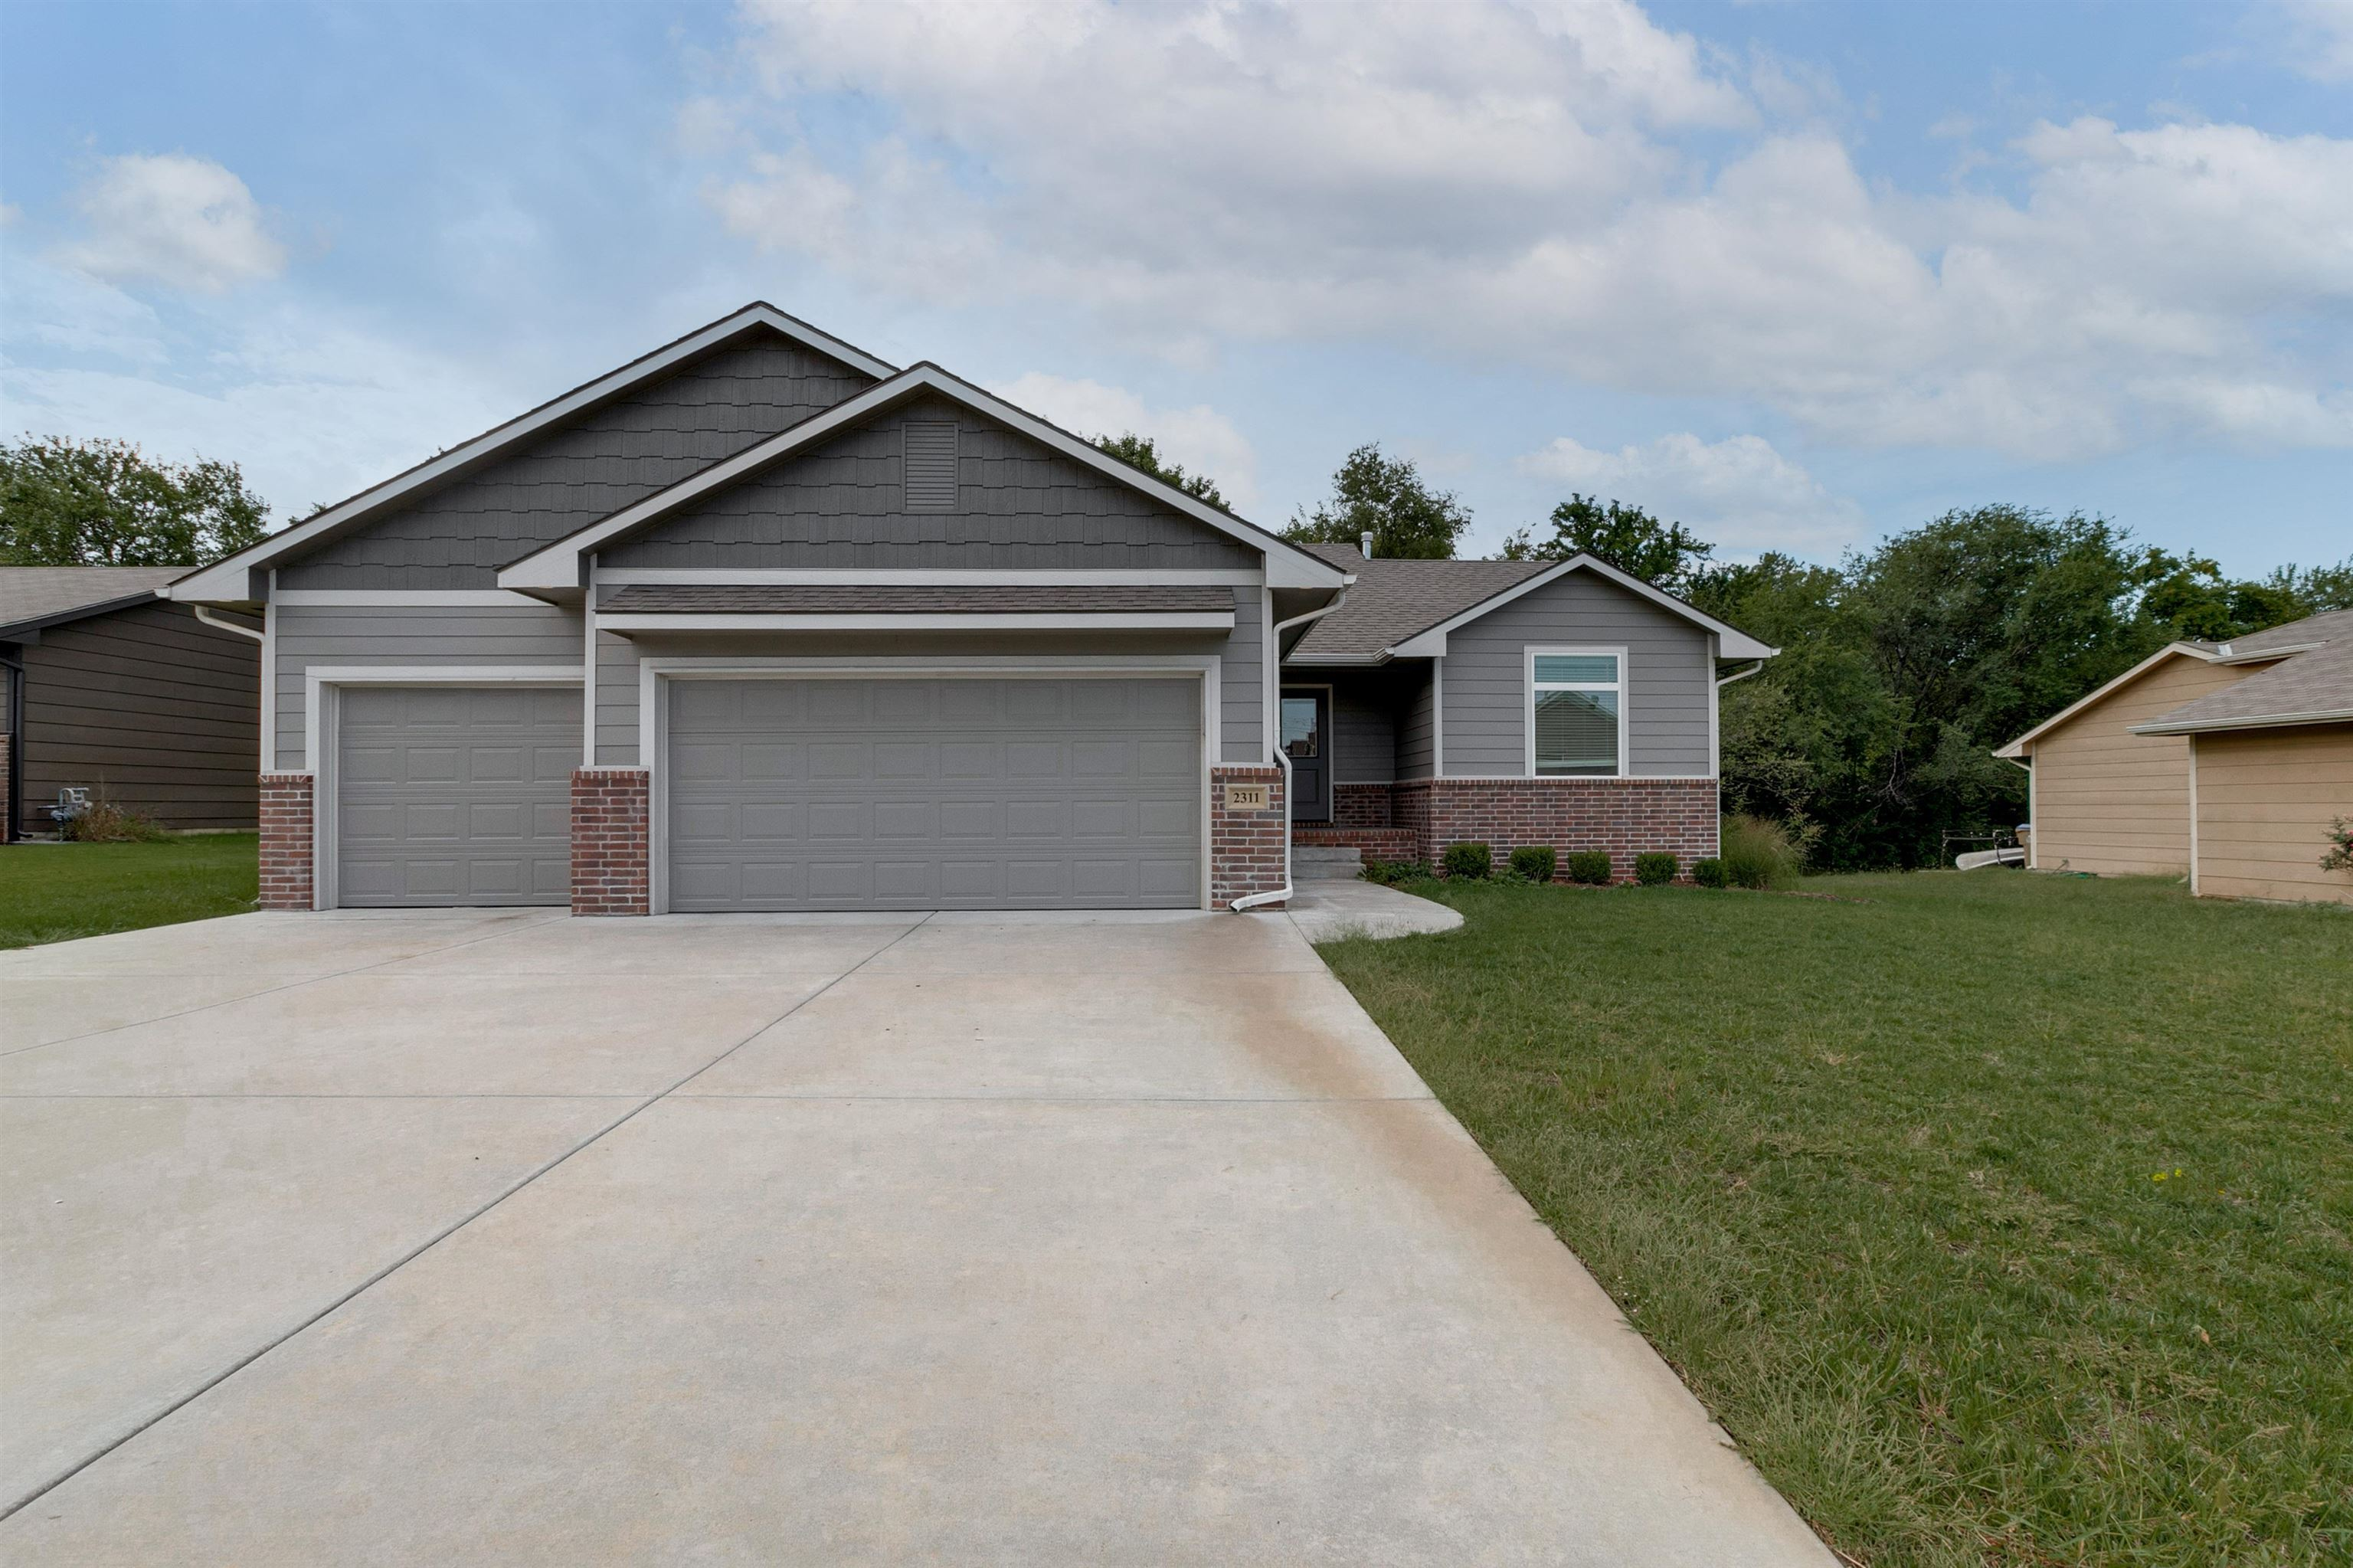 With over 2700 sq. feet of living space, this 5 bed, 3 bath home will not disappoint. With its neutr